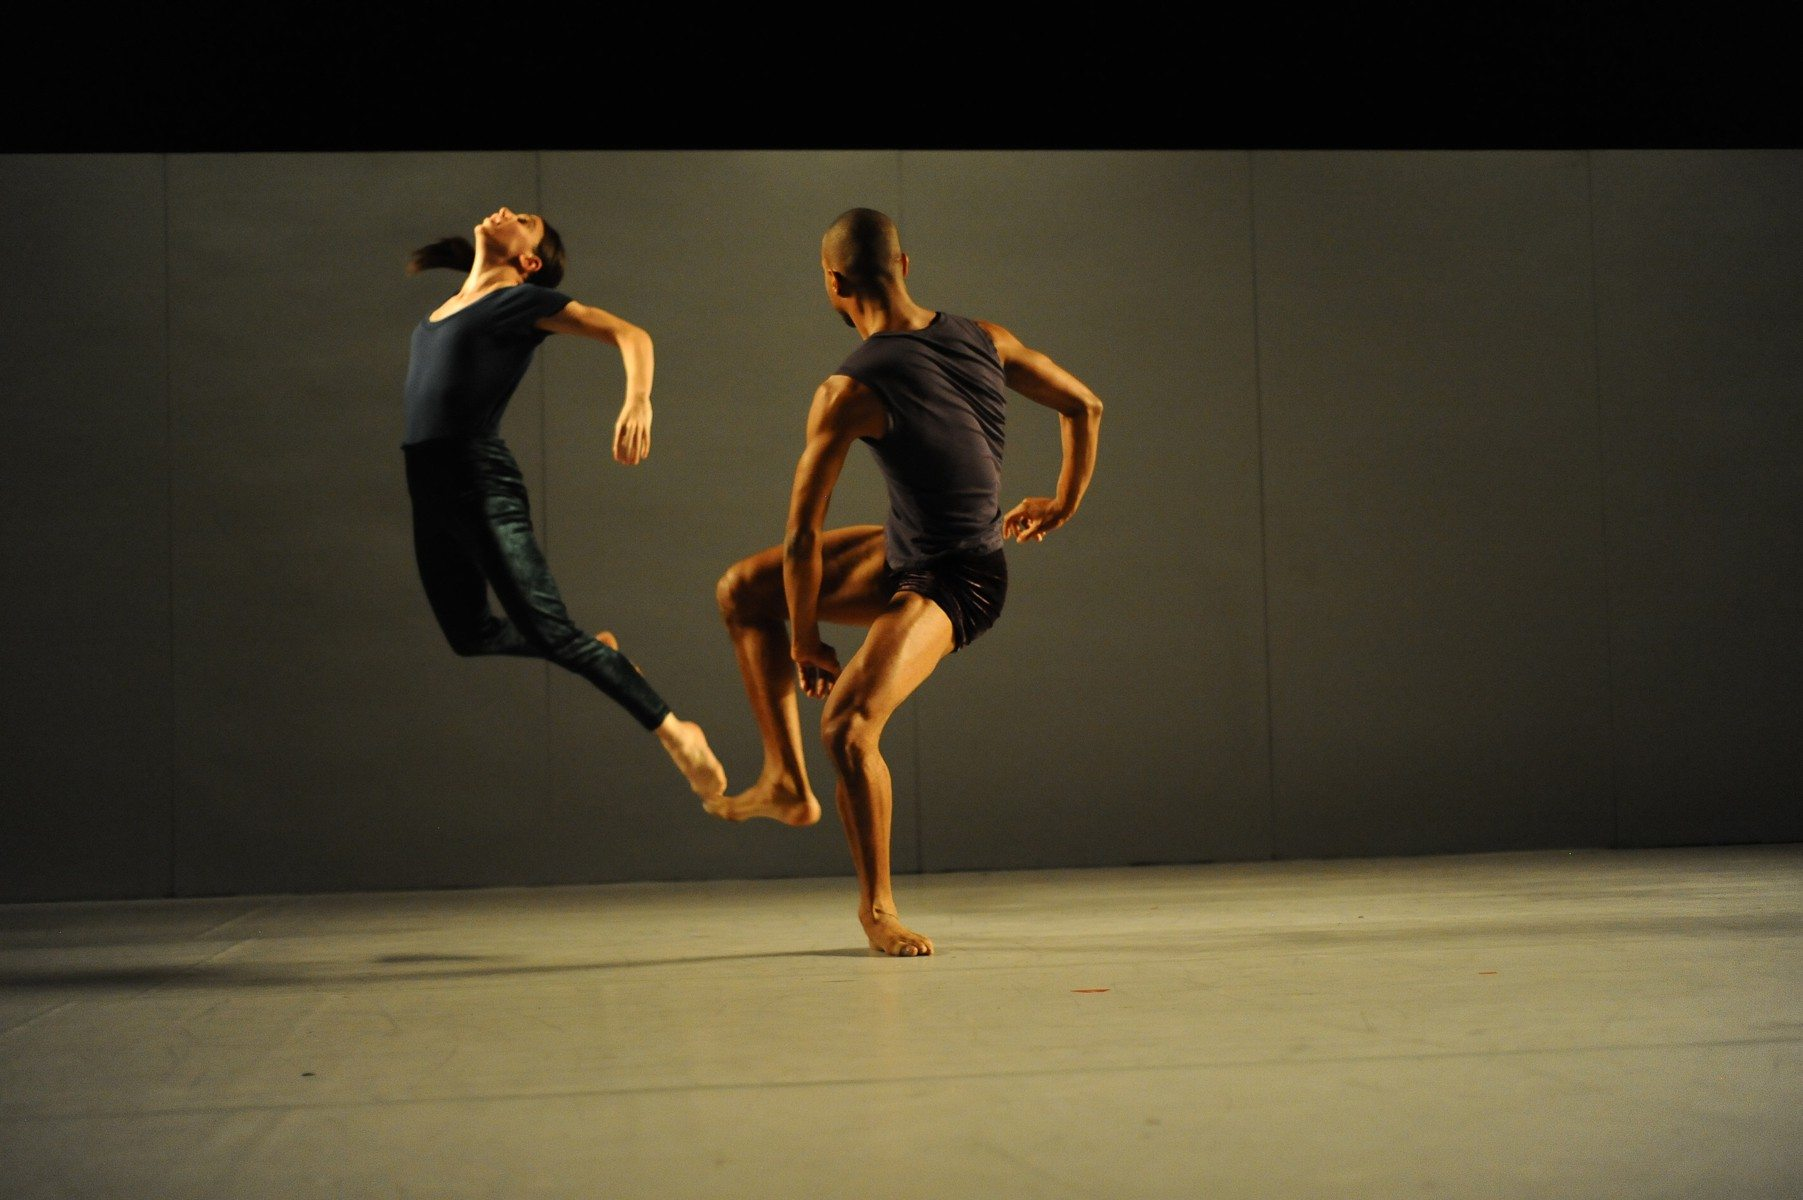 GADI DAGON/SF PERFORMANCESThe Israel dance troupe Batsheva is known for its innovative performances and unusual teaching methods.